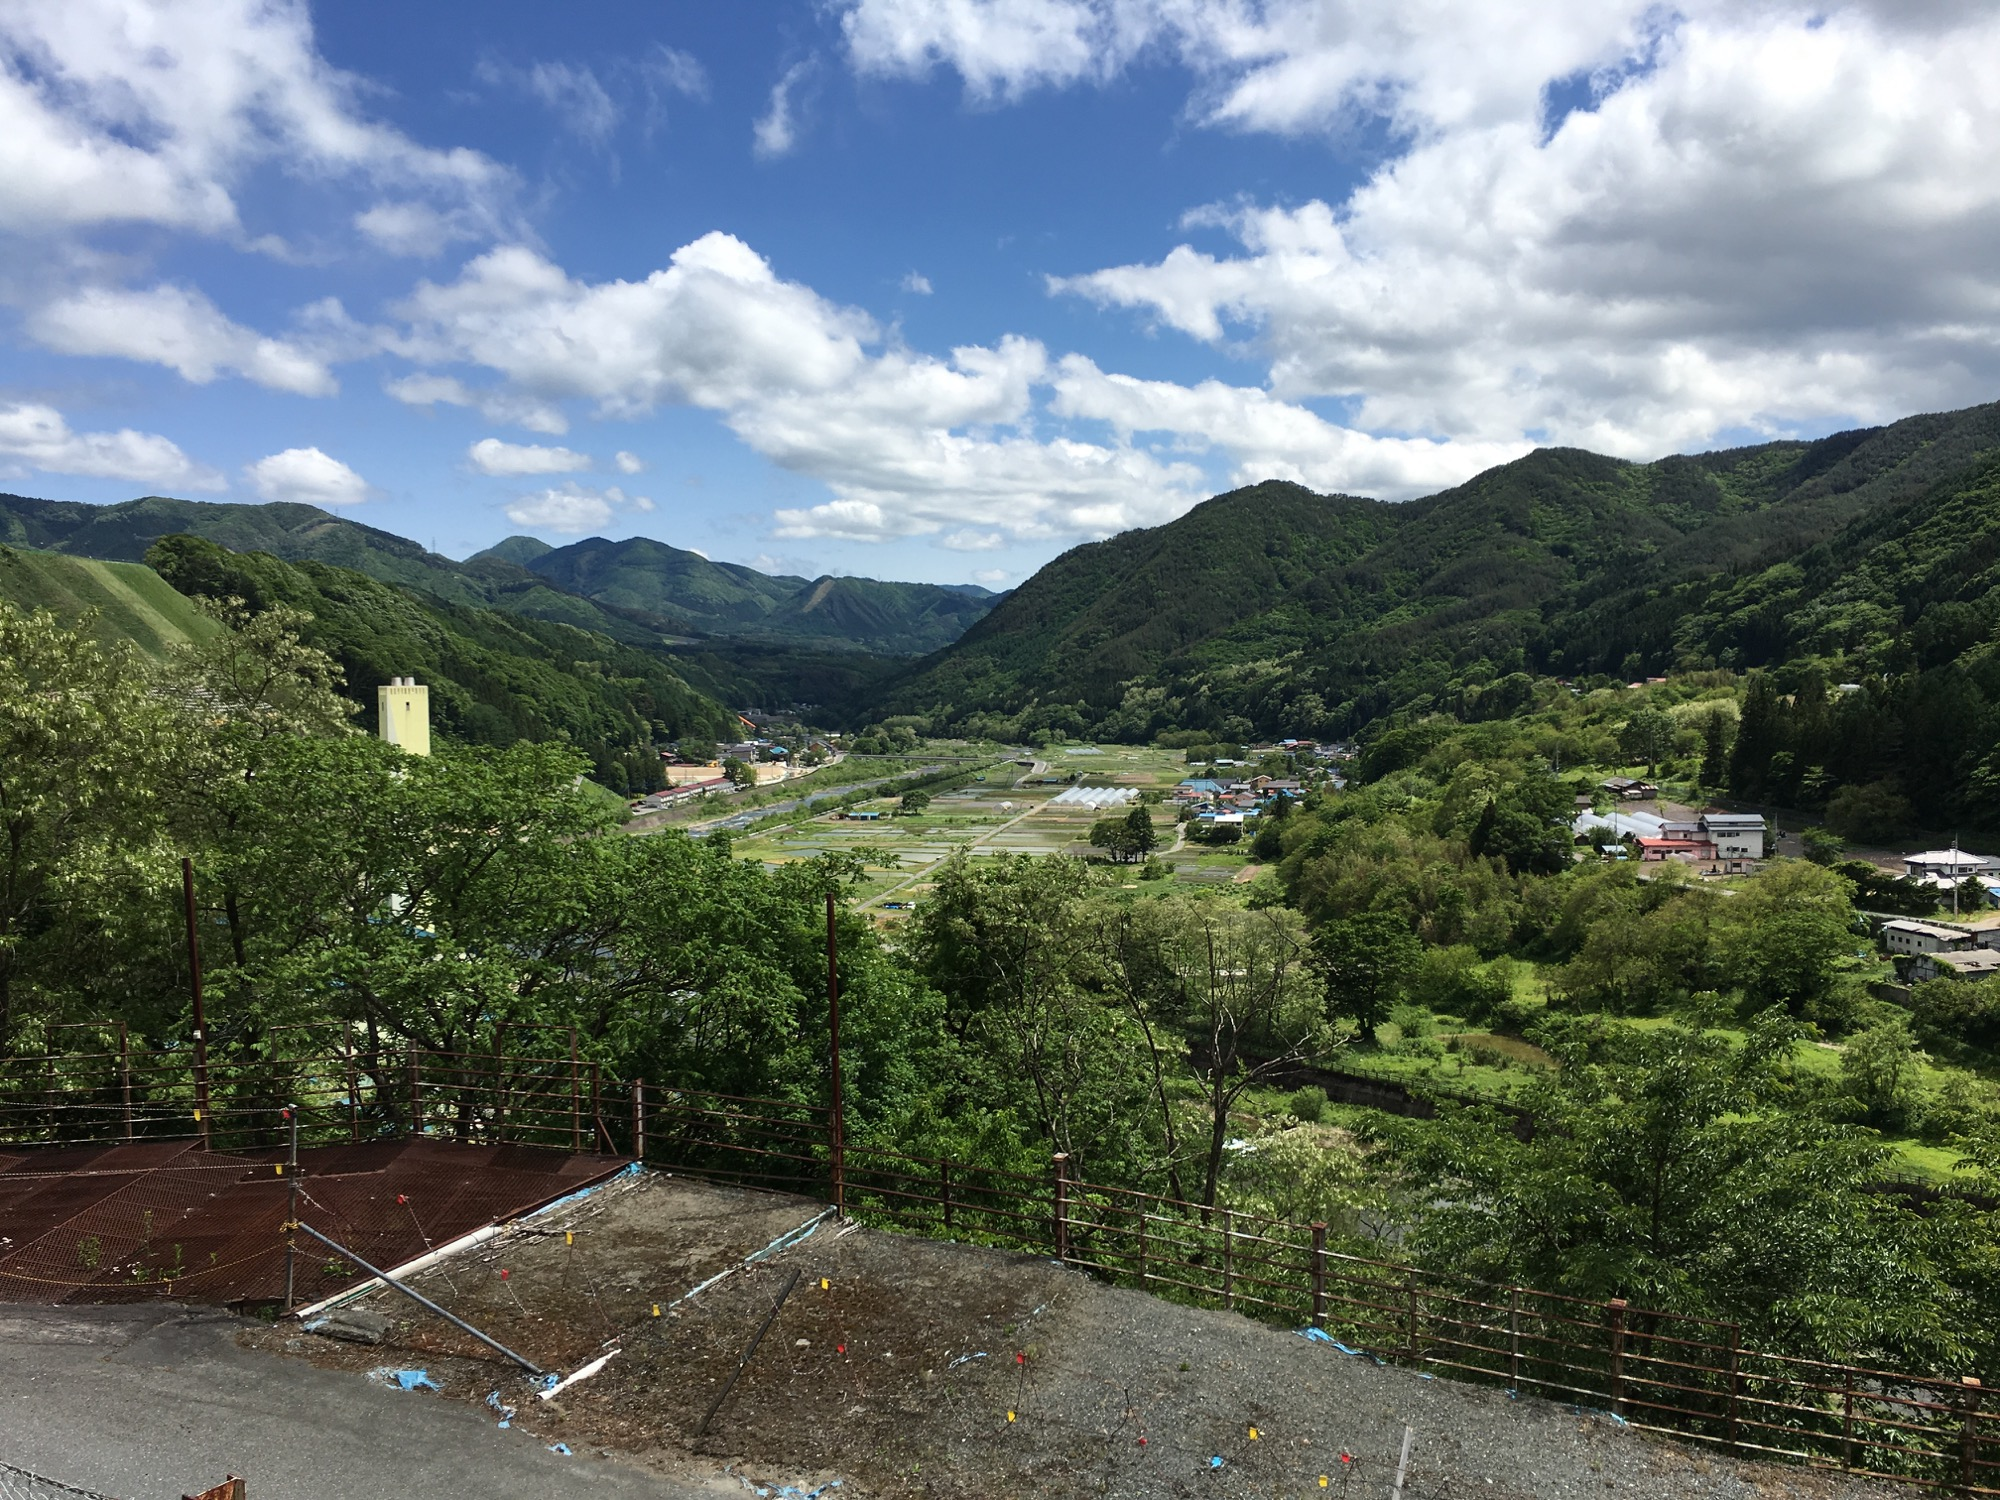 The view from the onsen alt tag